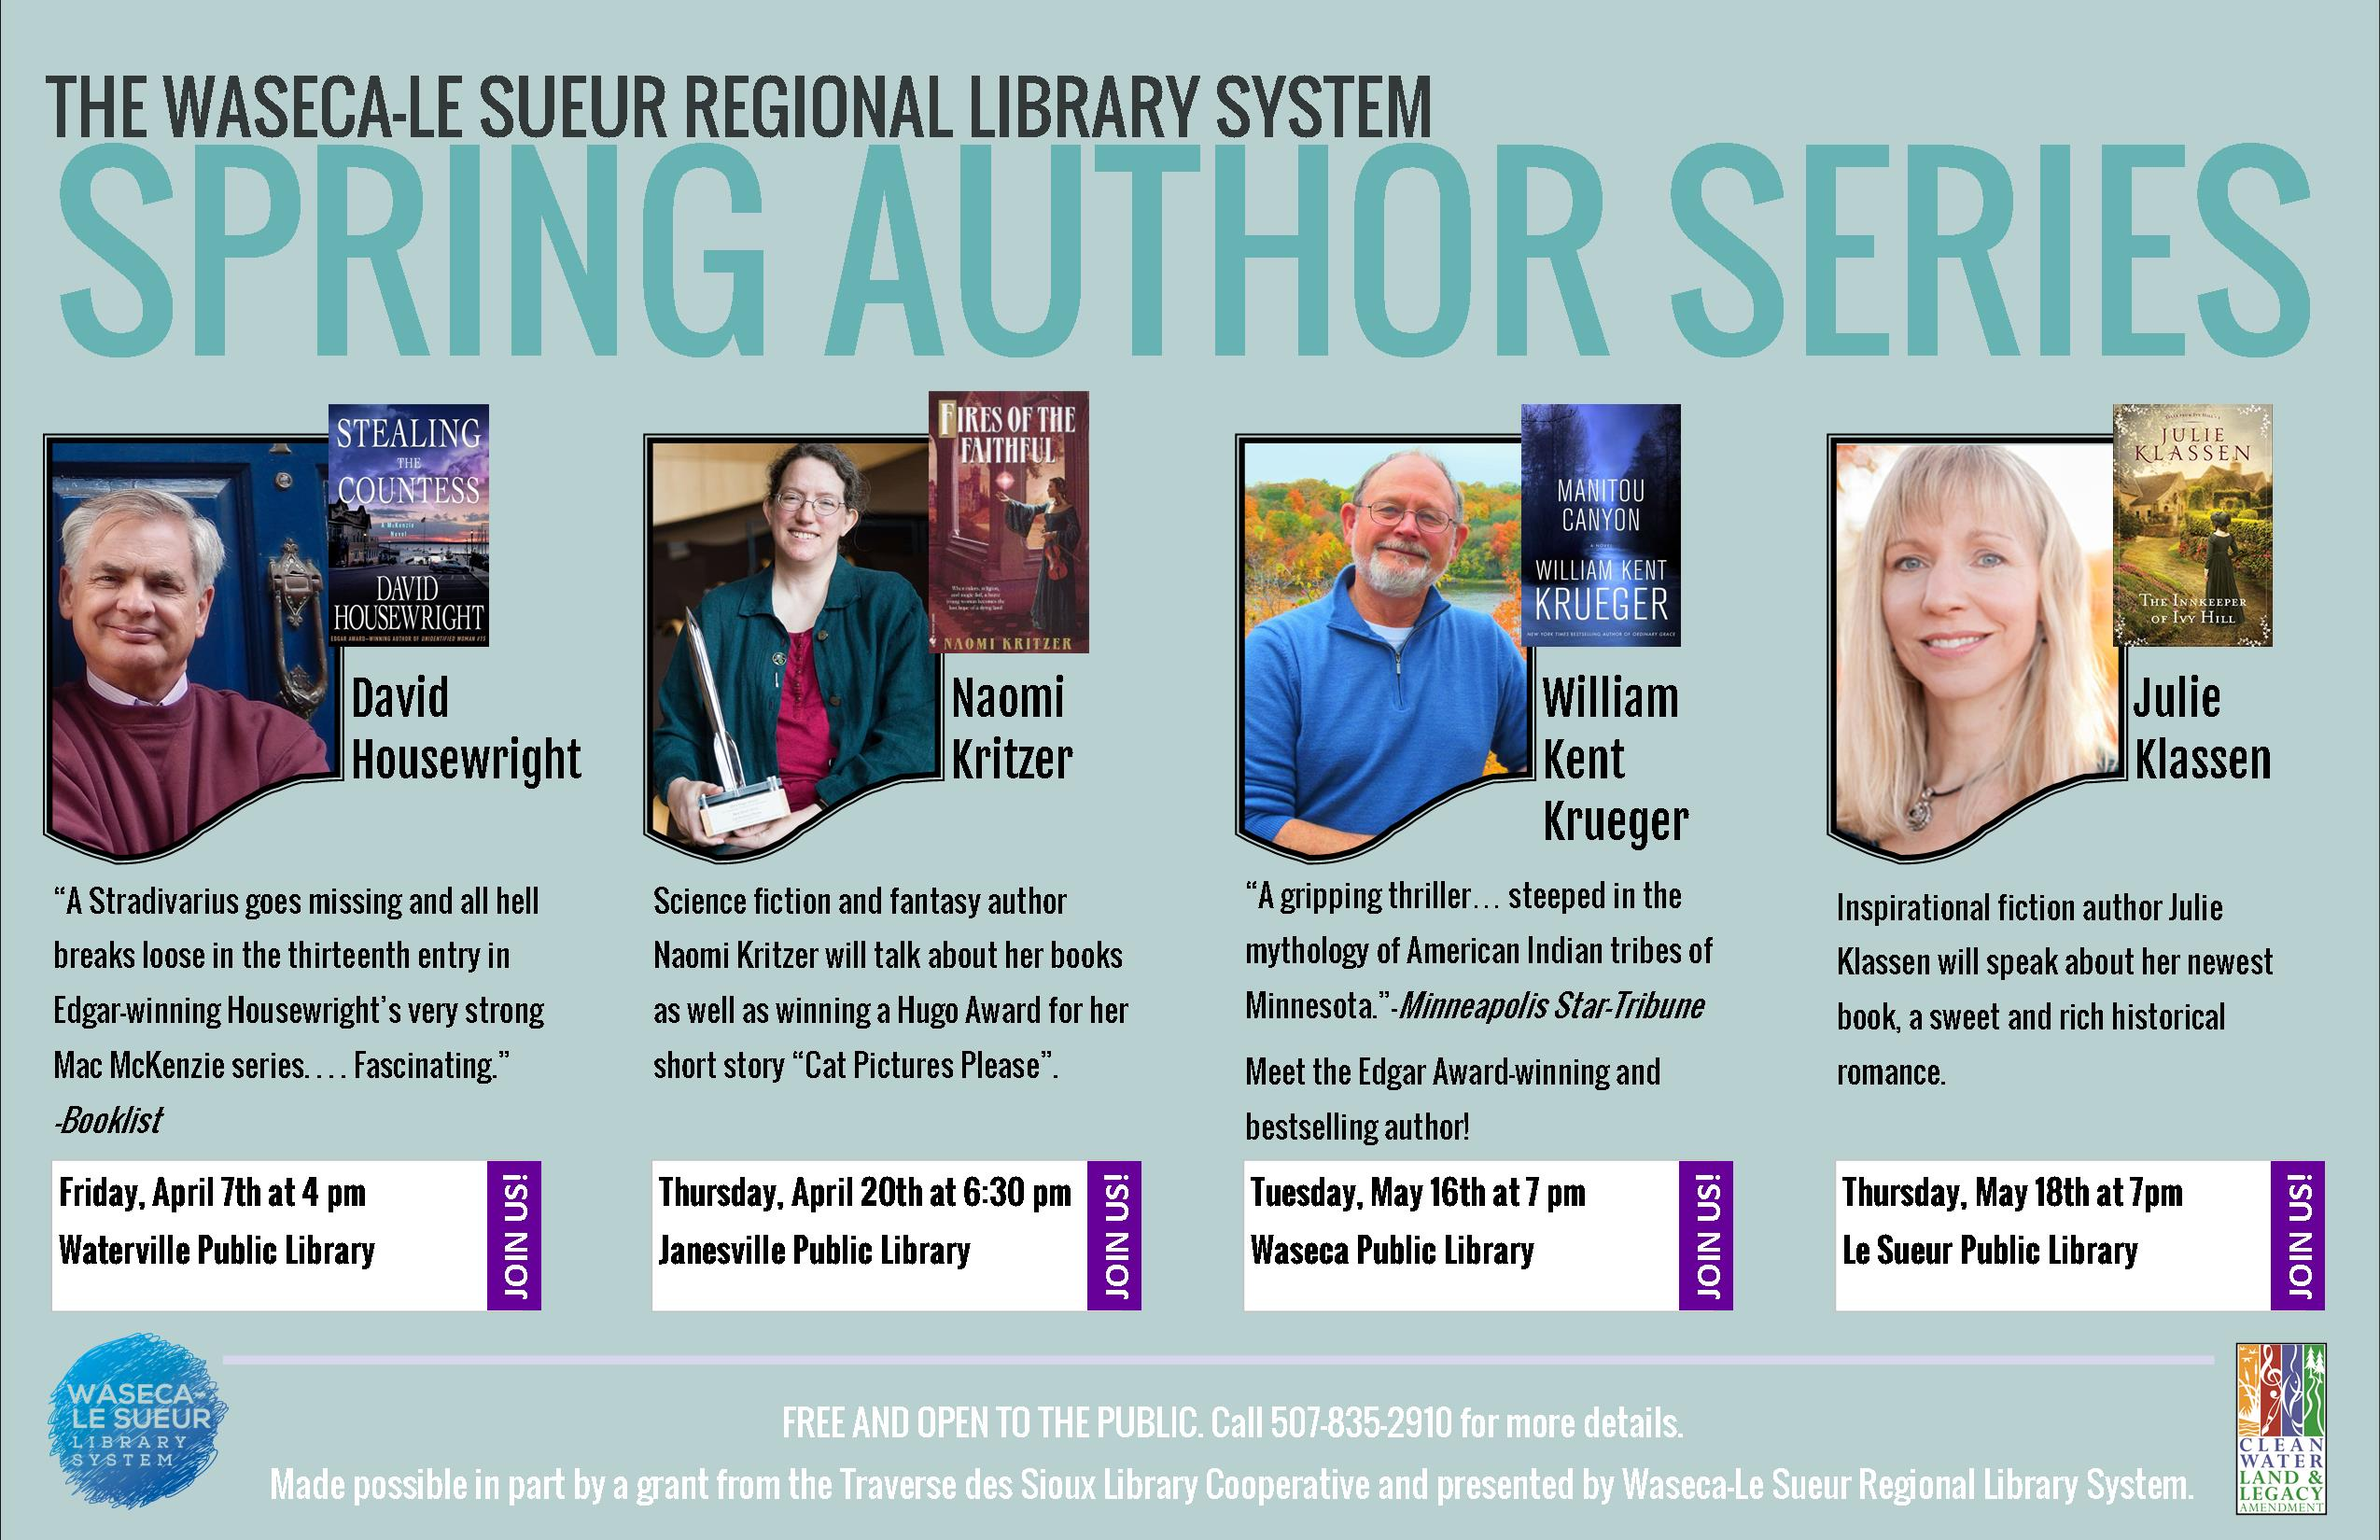 417 Author Series Poster